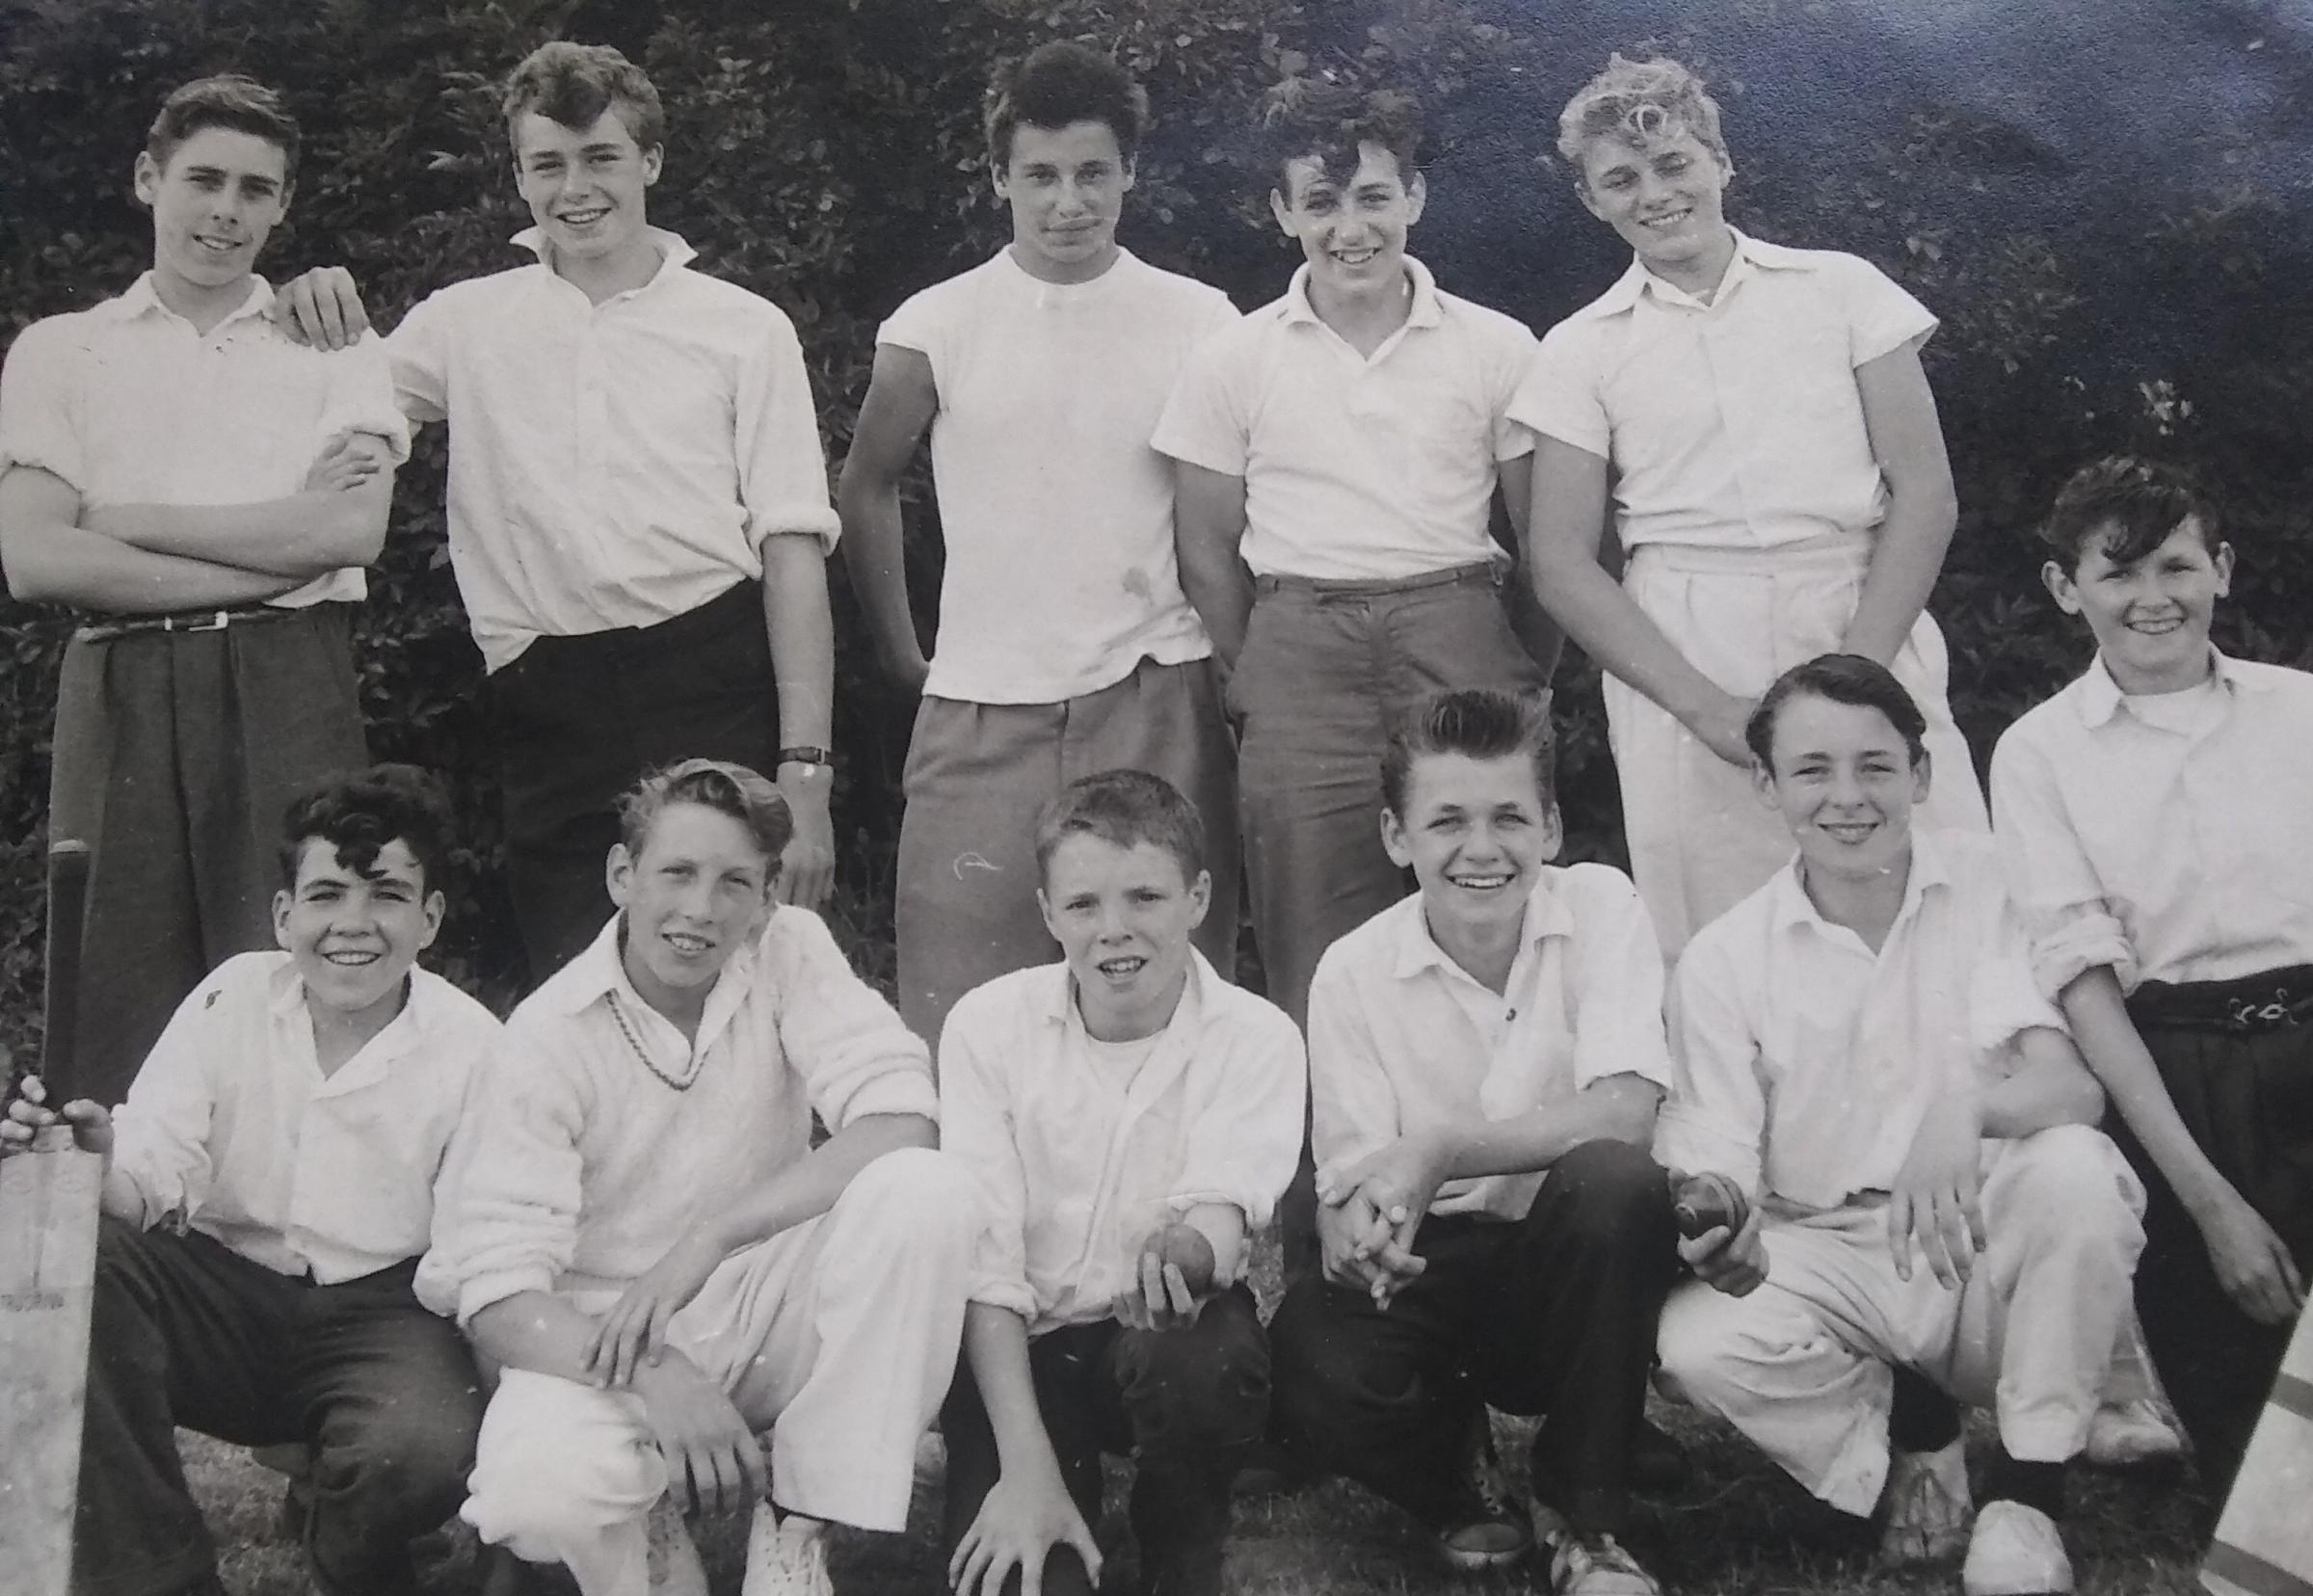 Do you know who these young men are who played for Whiston School Cricket Team in 1960?